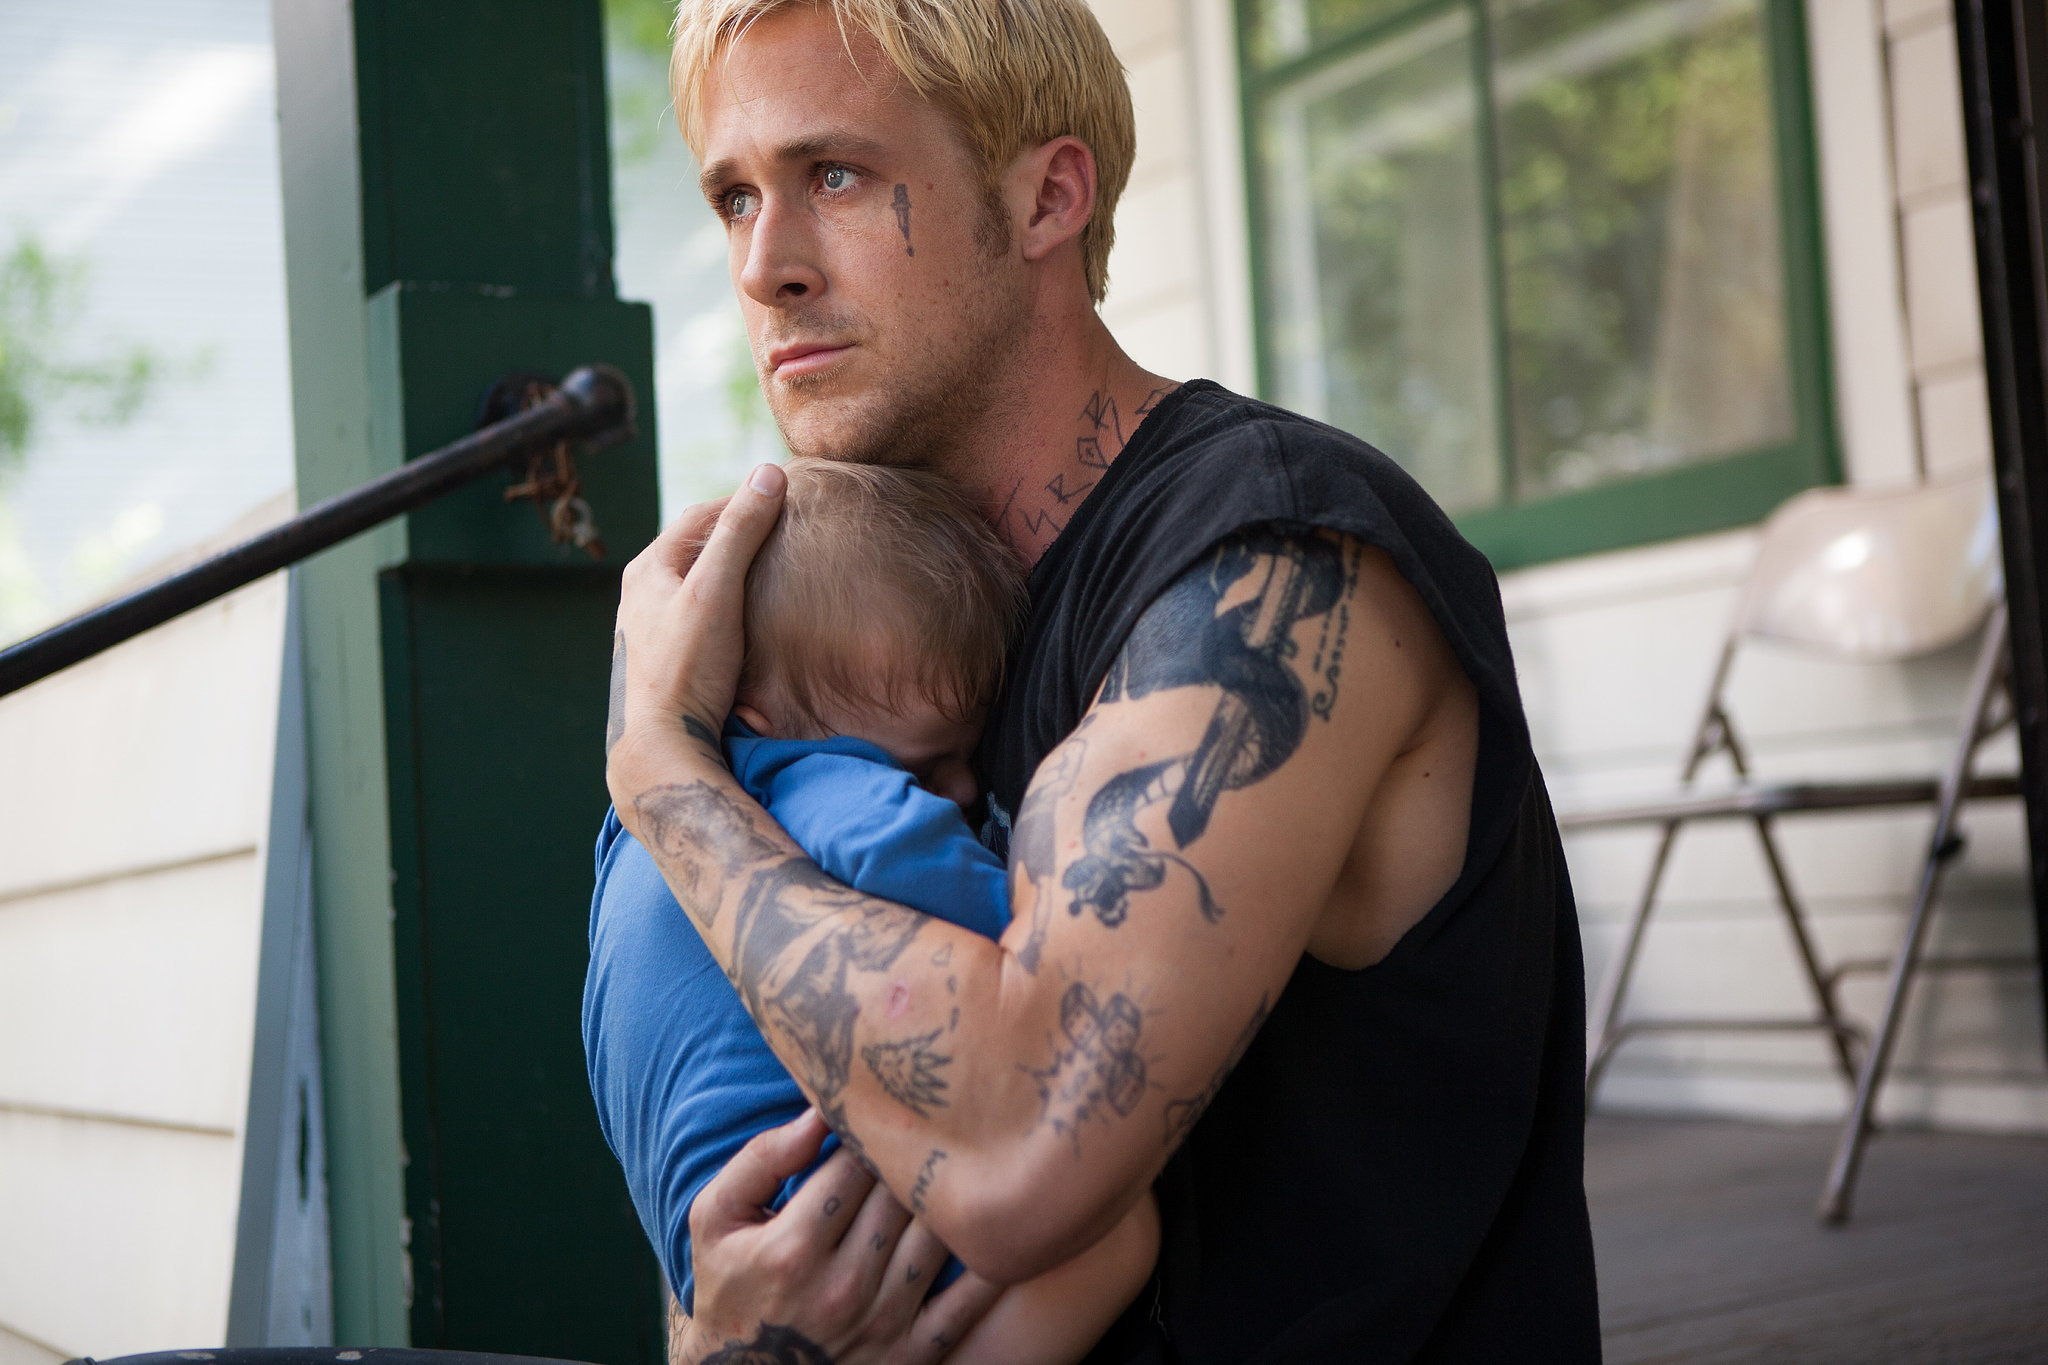 In The Place Beyond the Pines, a blond Ryan held onto his little boy.